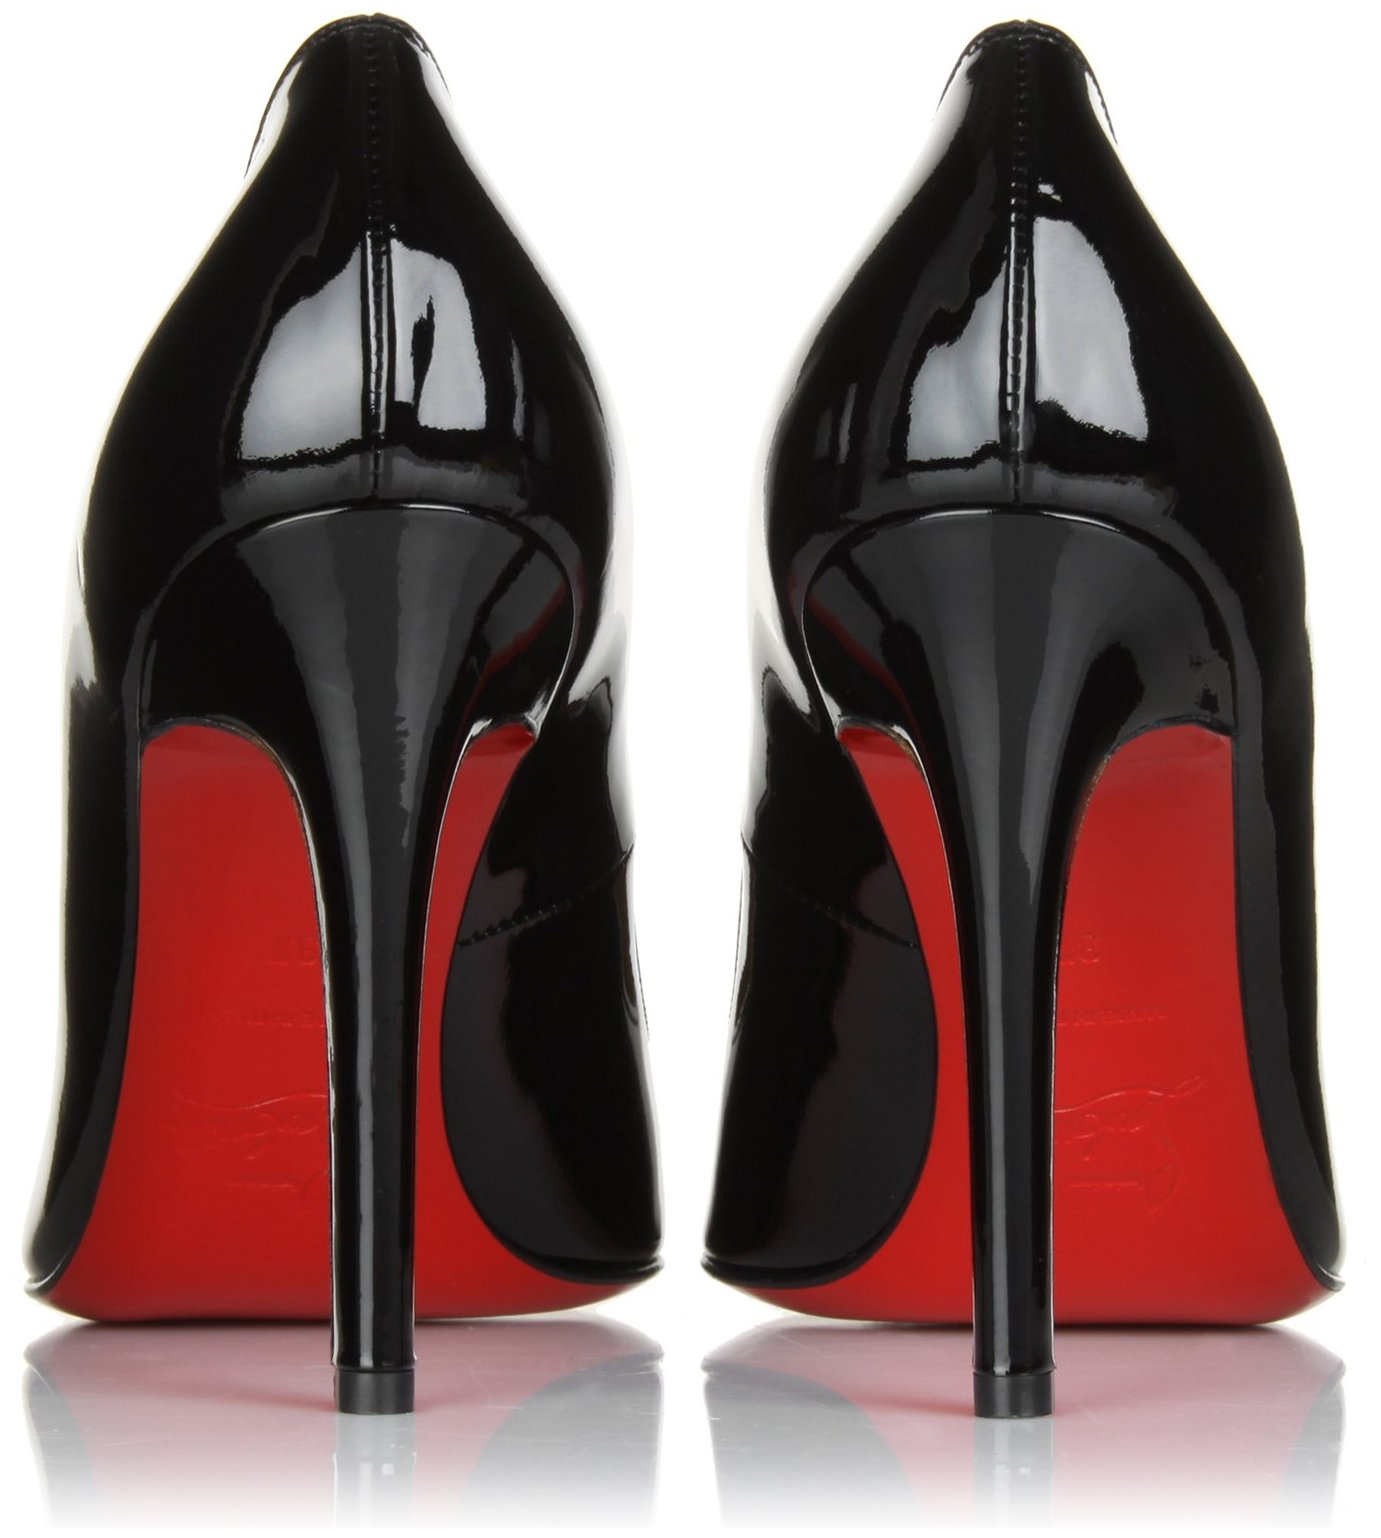 christian loui vuitton shoes - itsnina_ox: How to spot fake Christian Louboutin Shoes